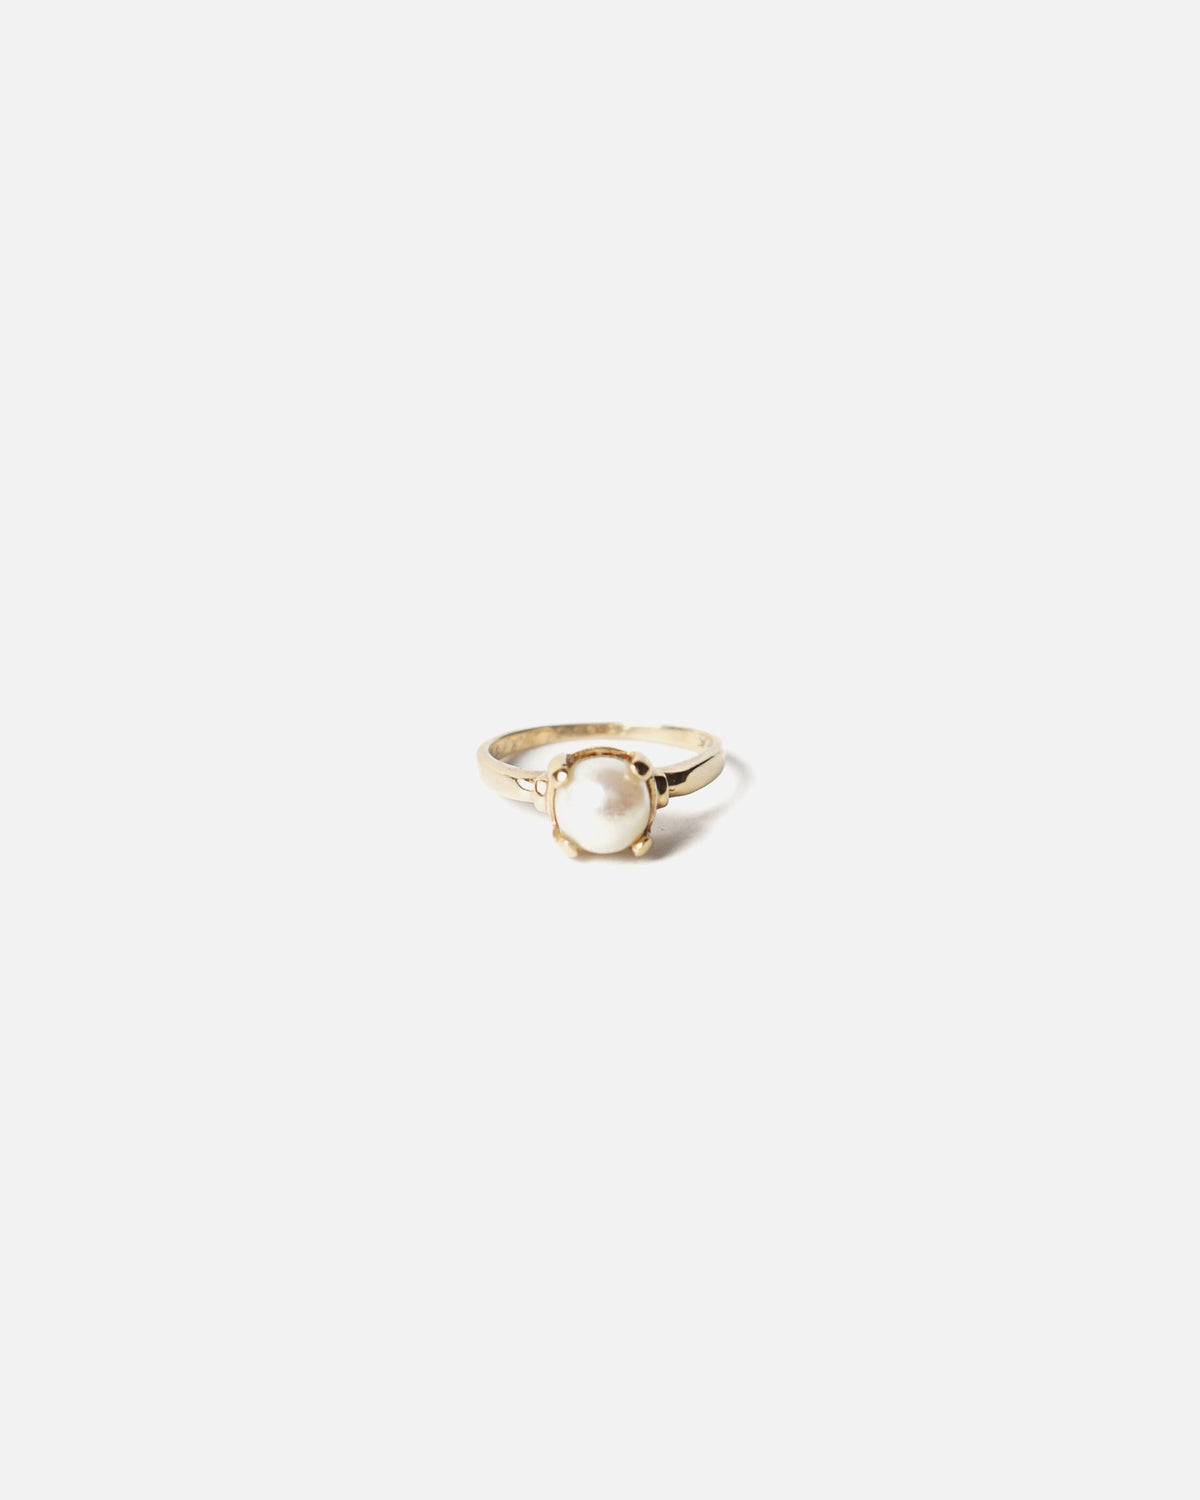 14K Gold Ring W / Pearl